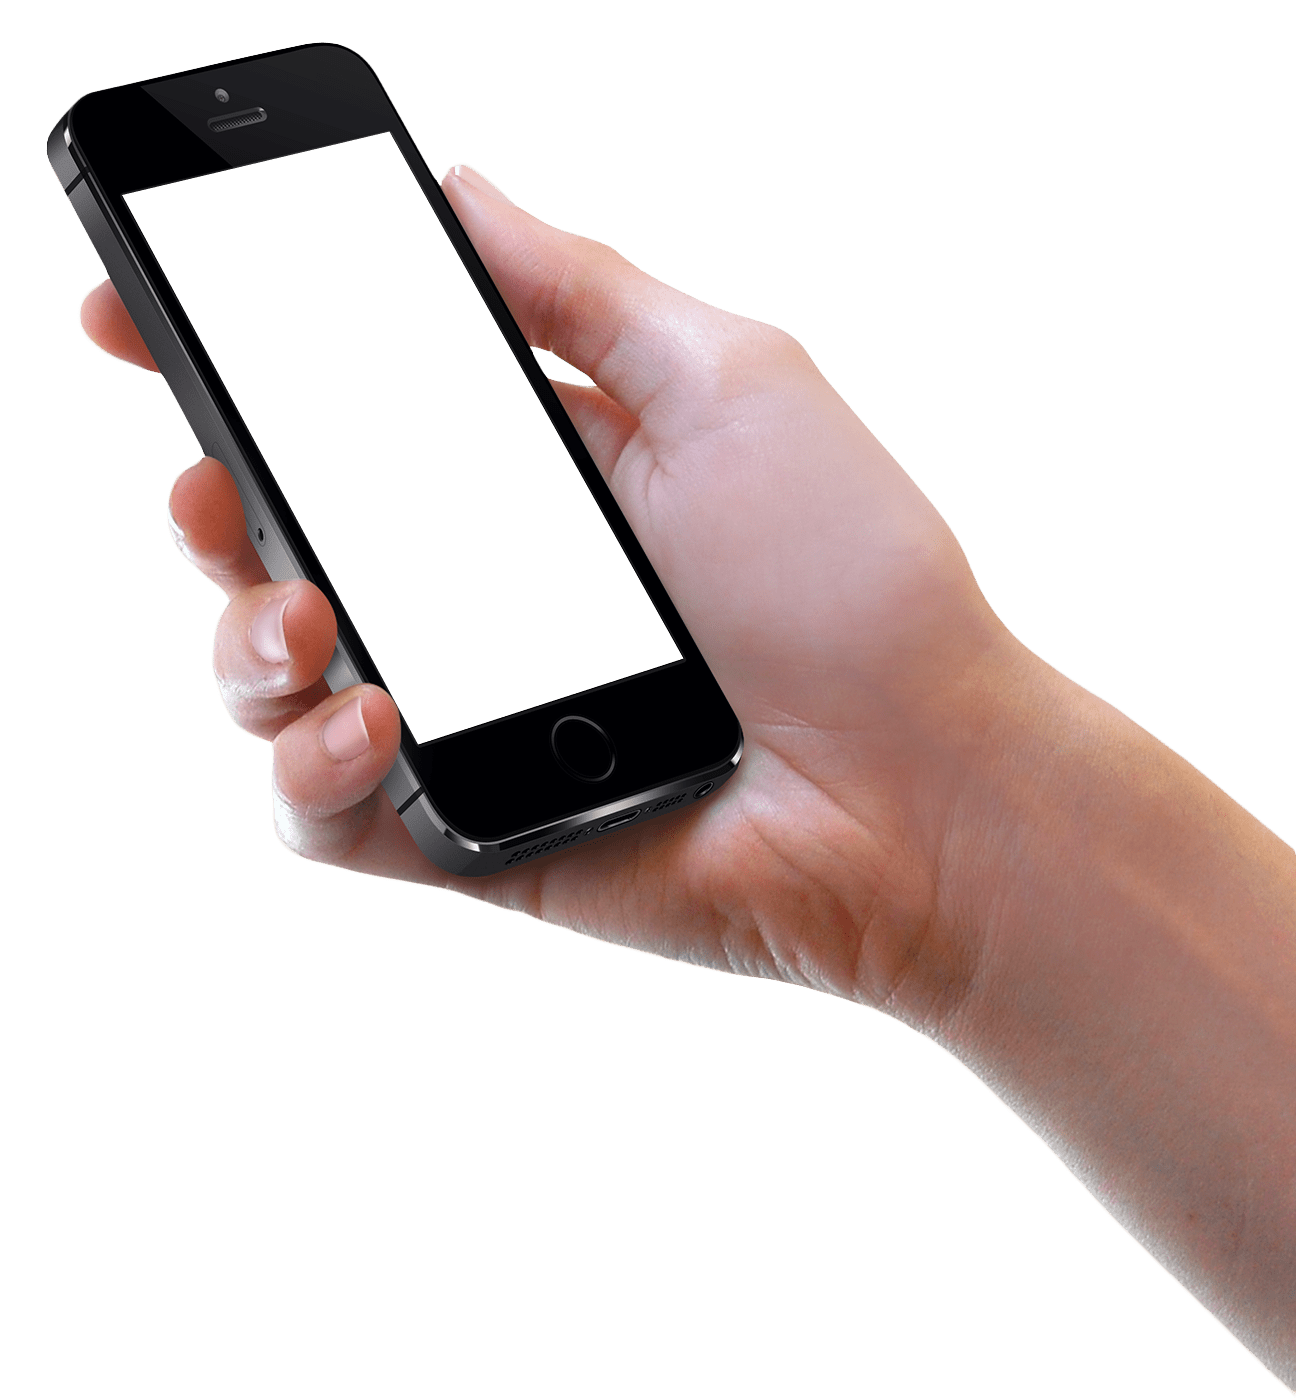 hight resolution of holding phone png hand black iphone image